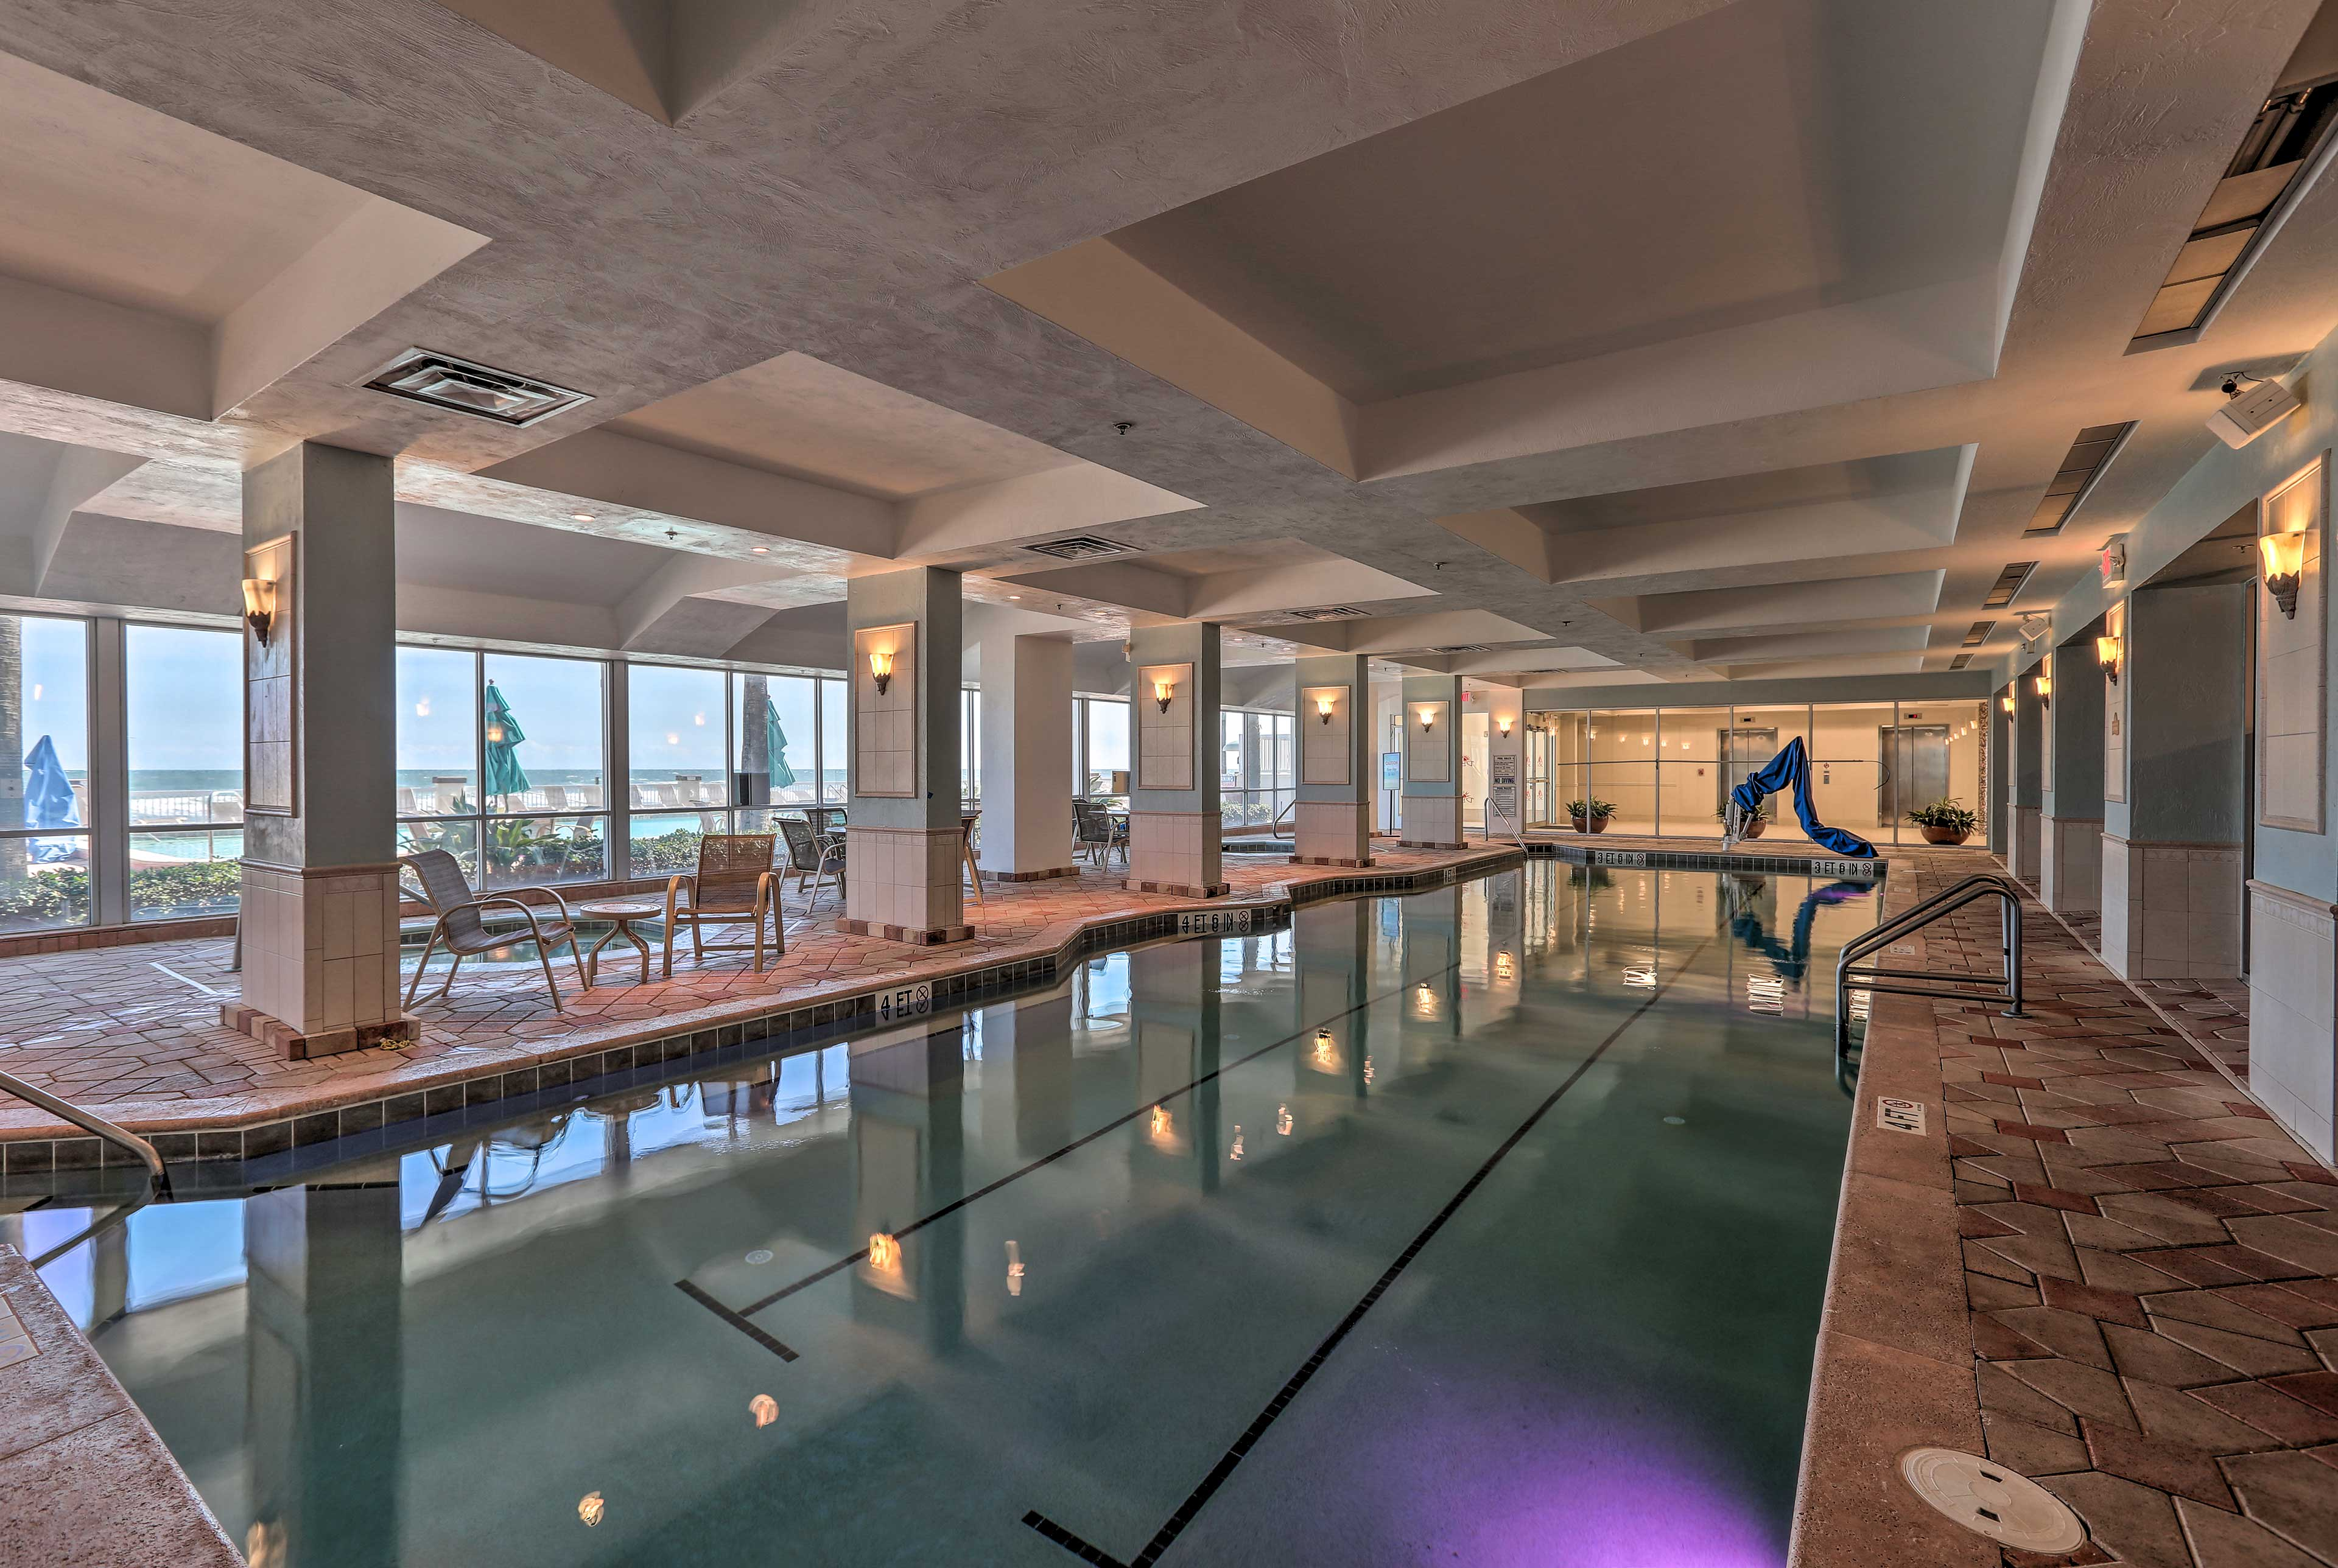 Rain or shine, you can still splash around in the indoor pool!